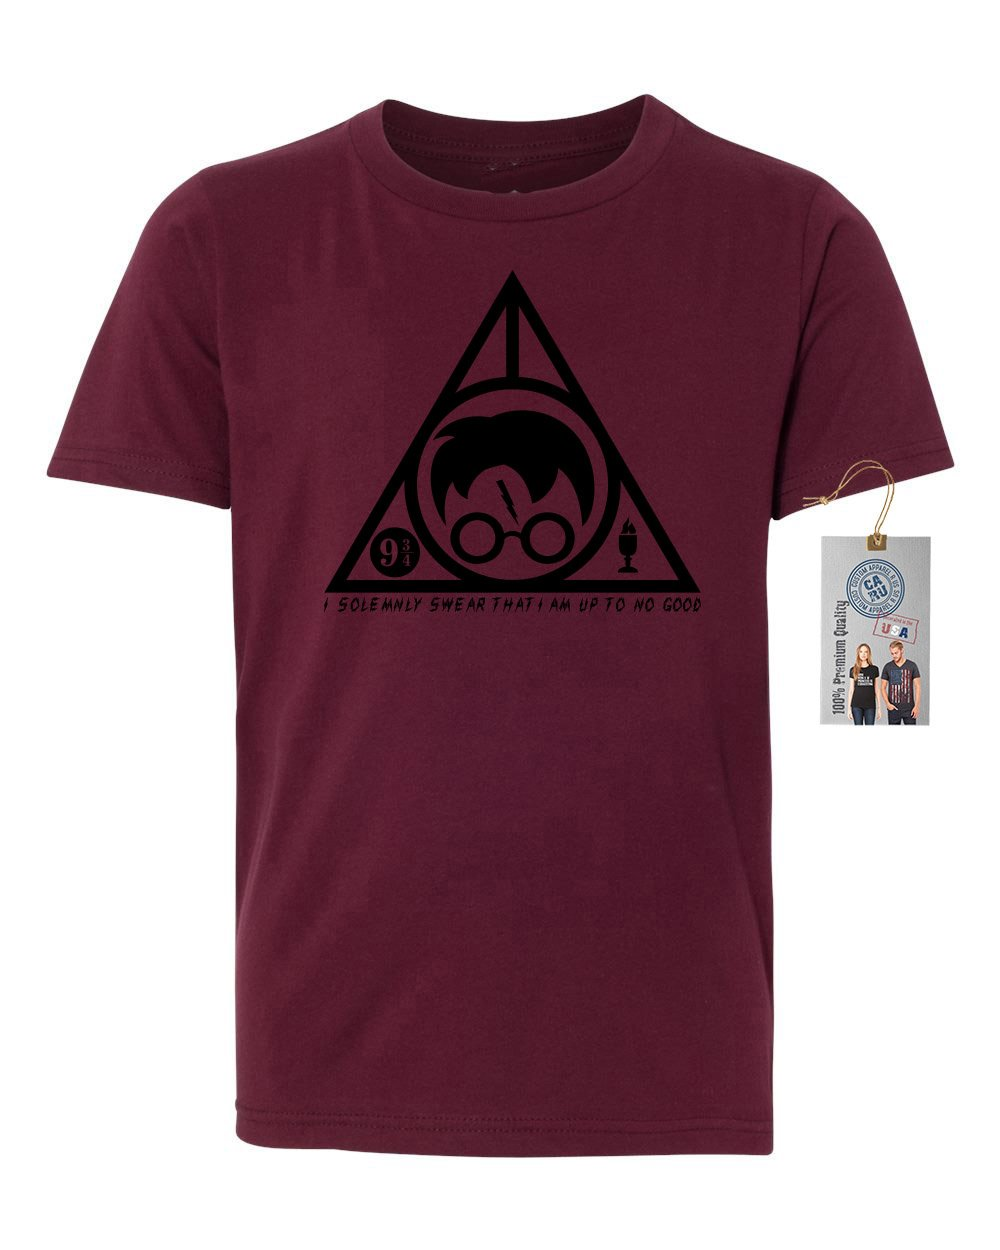 Harry Potter Solemnly Swear Triangle Youth Short Sleeve Shirt Maroon M by Custom Apparel R Us (Image #1)